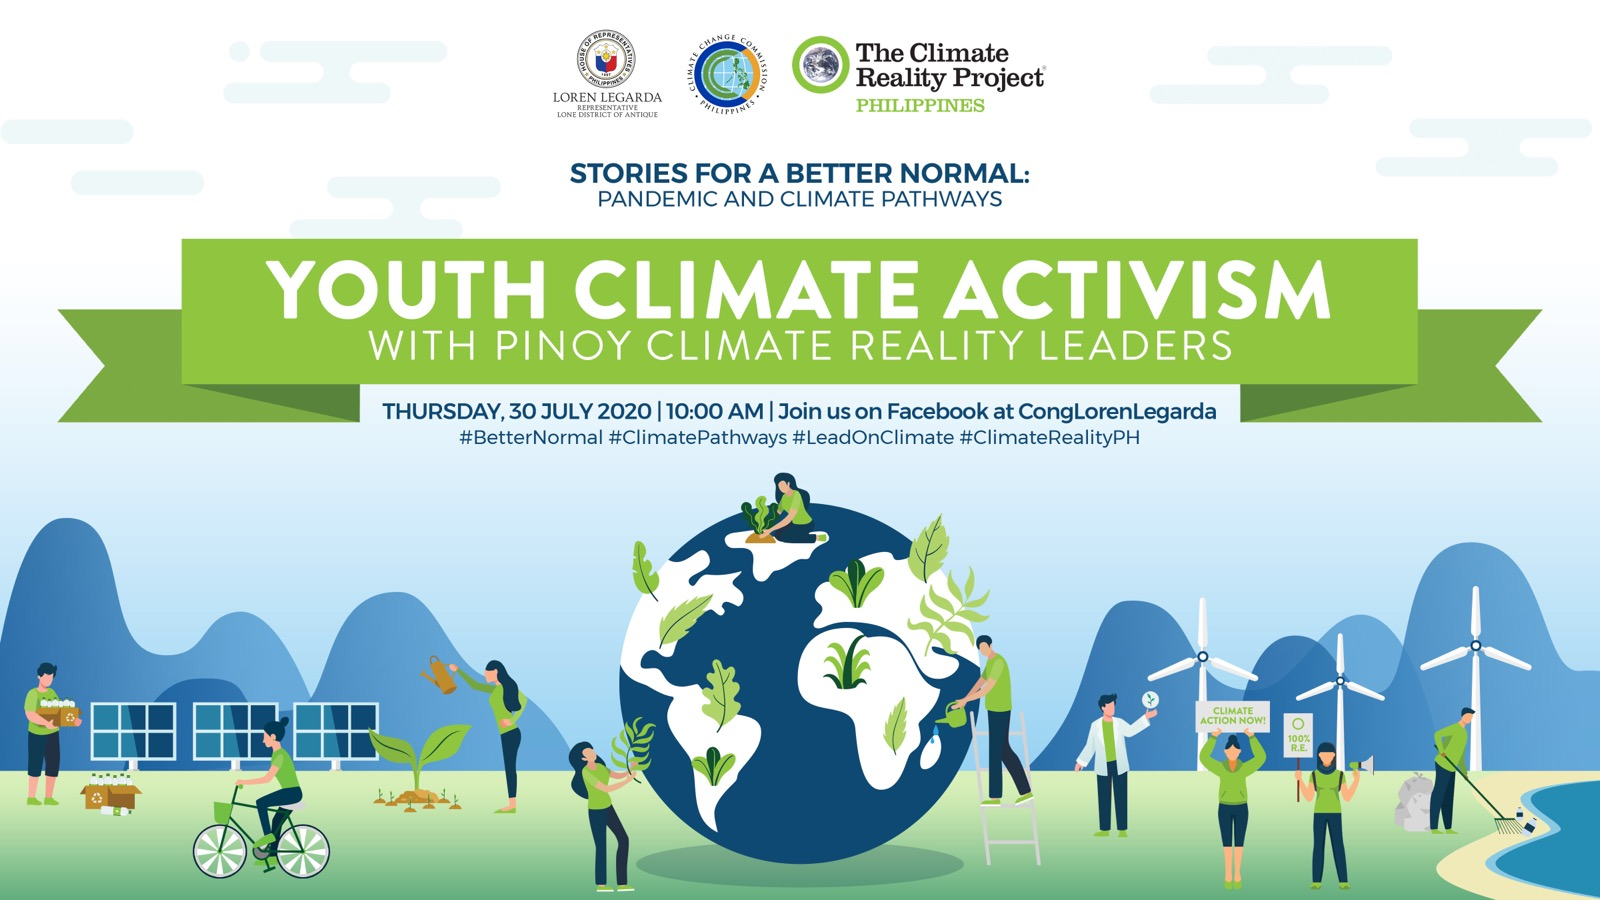 """Youth Climate Activism in 11th Episode of """"Stories for a Better Normal"""""""